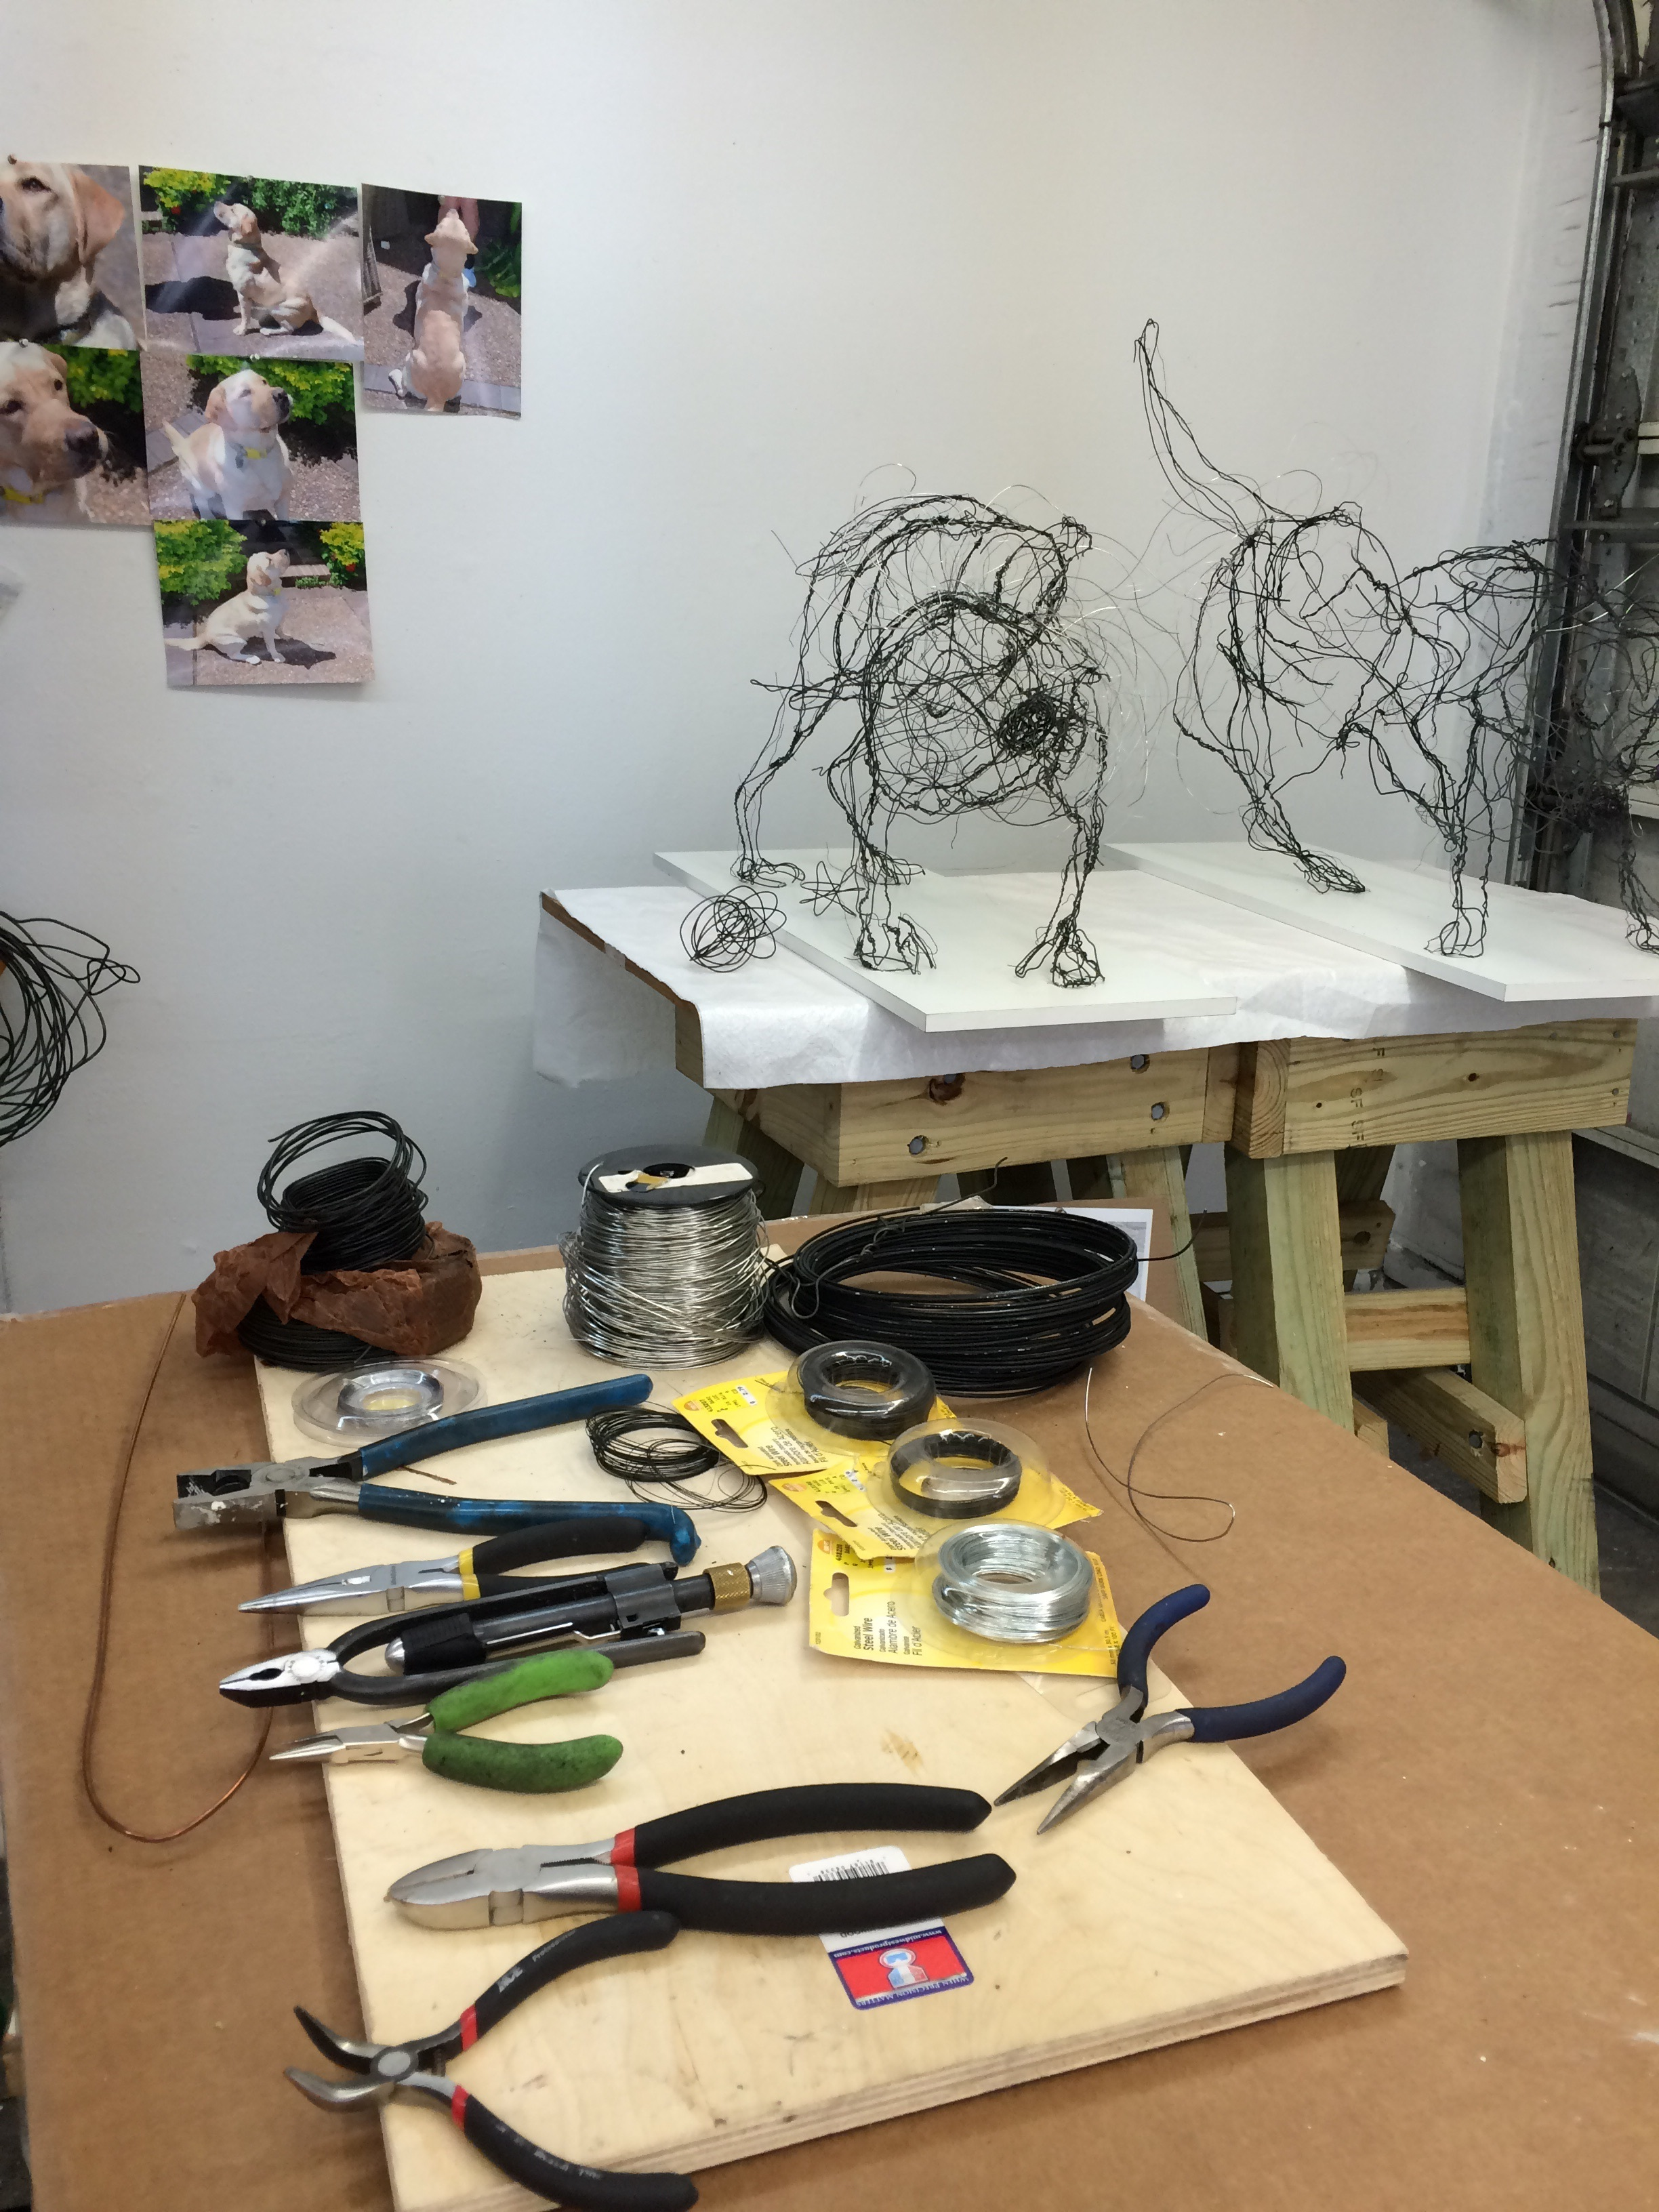 shake shake shake -wire sculptures I and II in the background in the foreground are my pliars, wire cutters and assortments of wire.